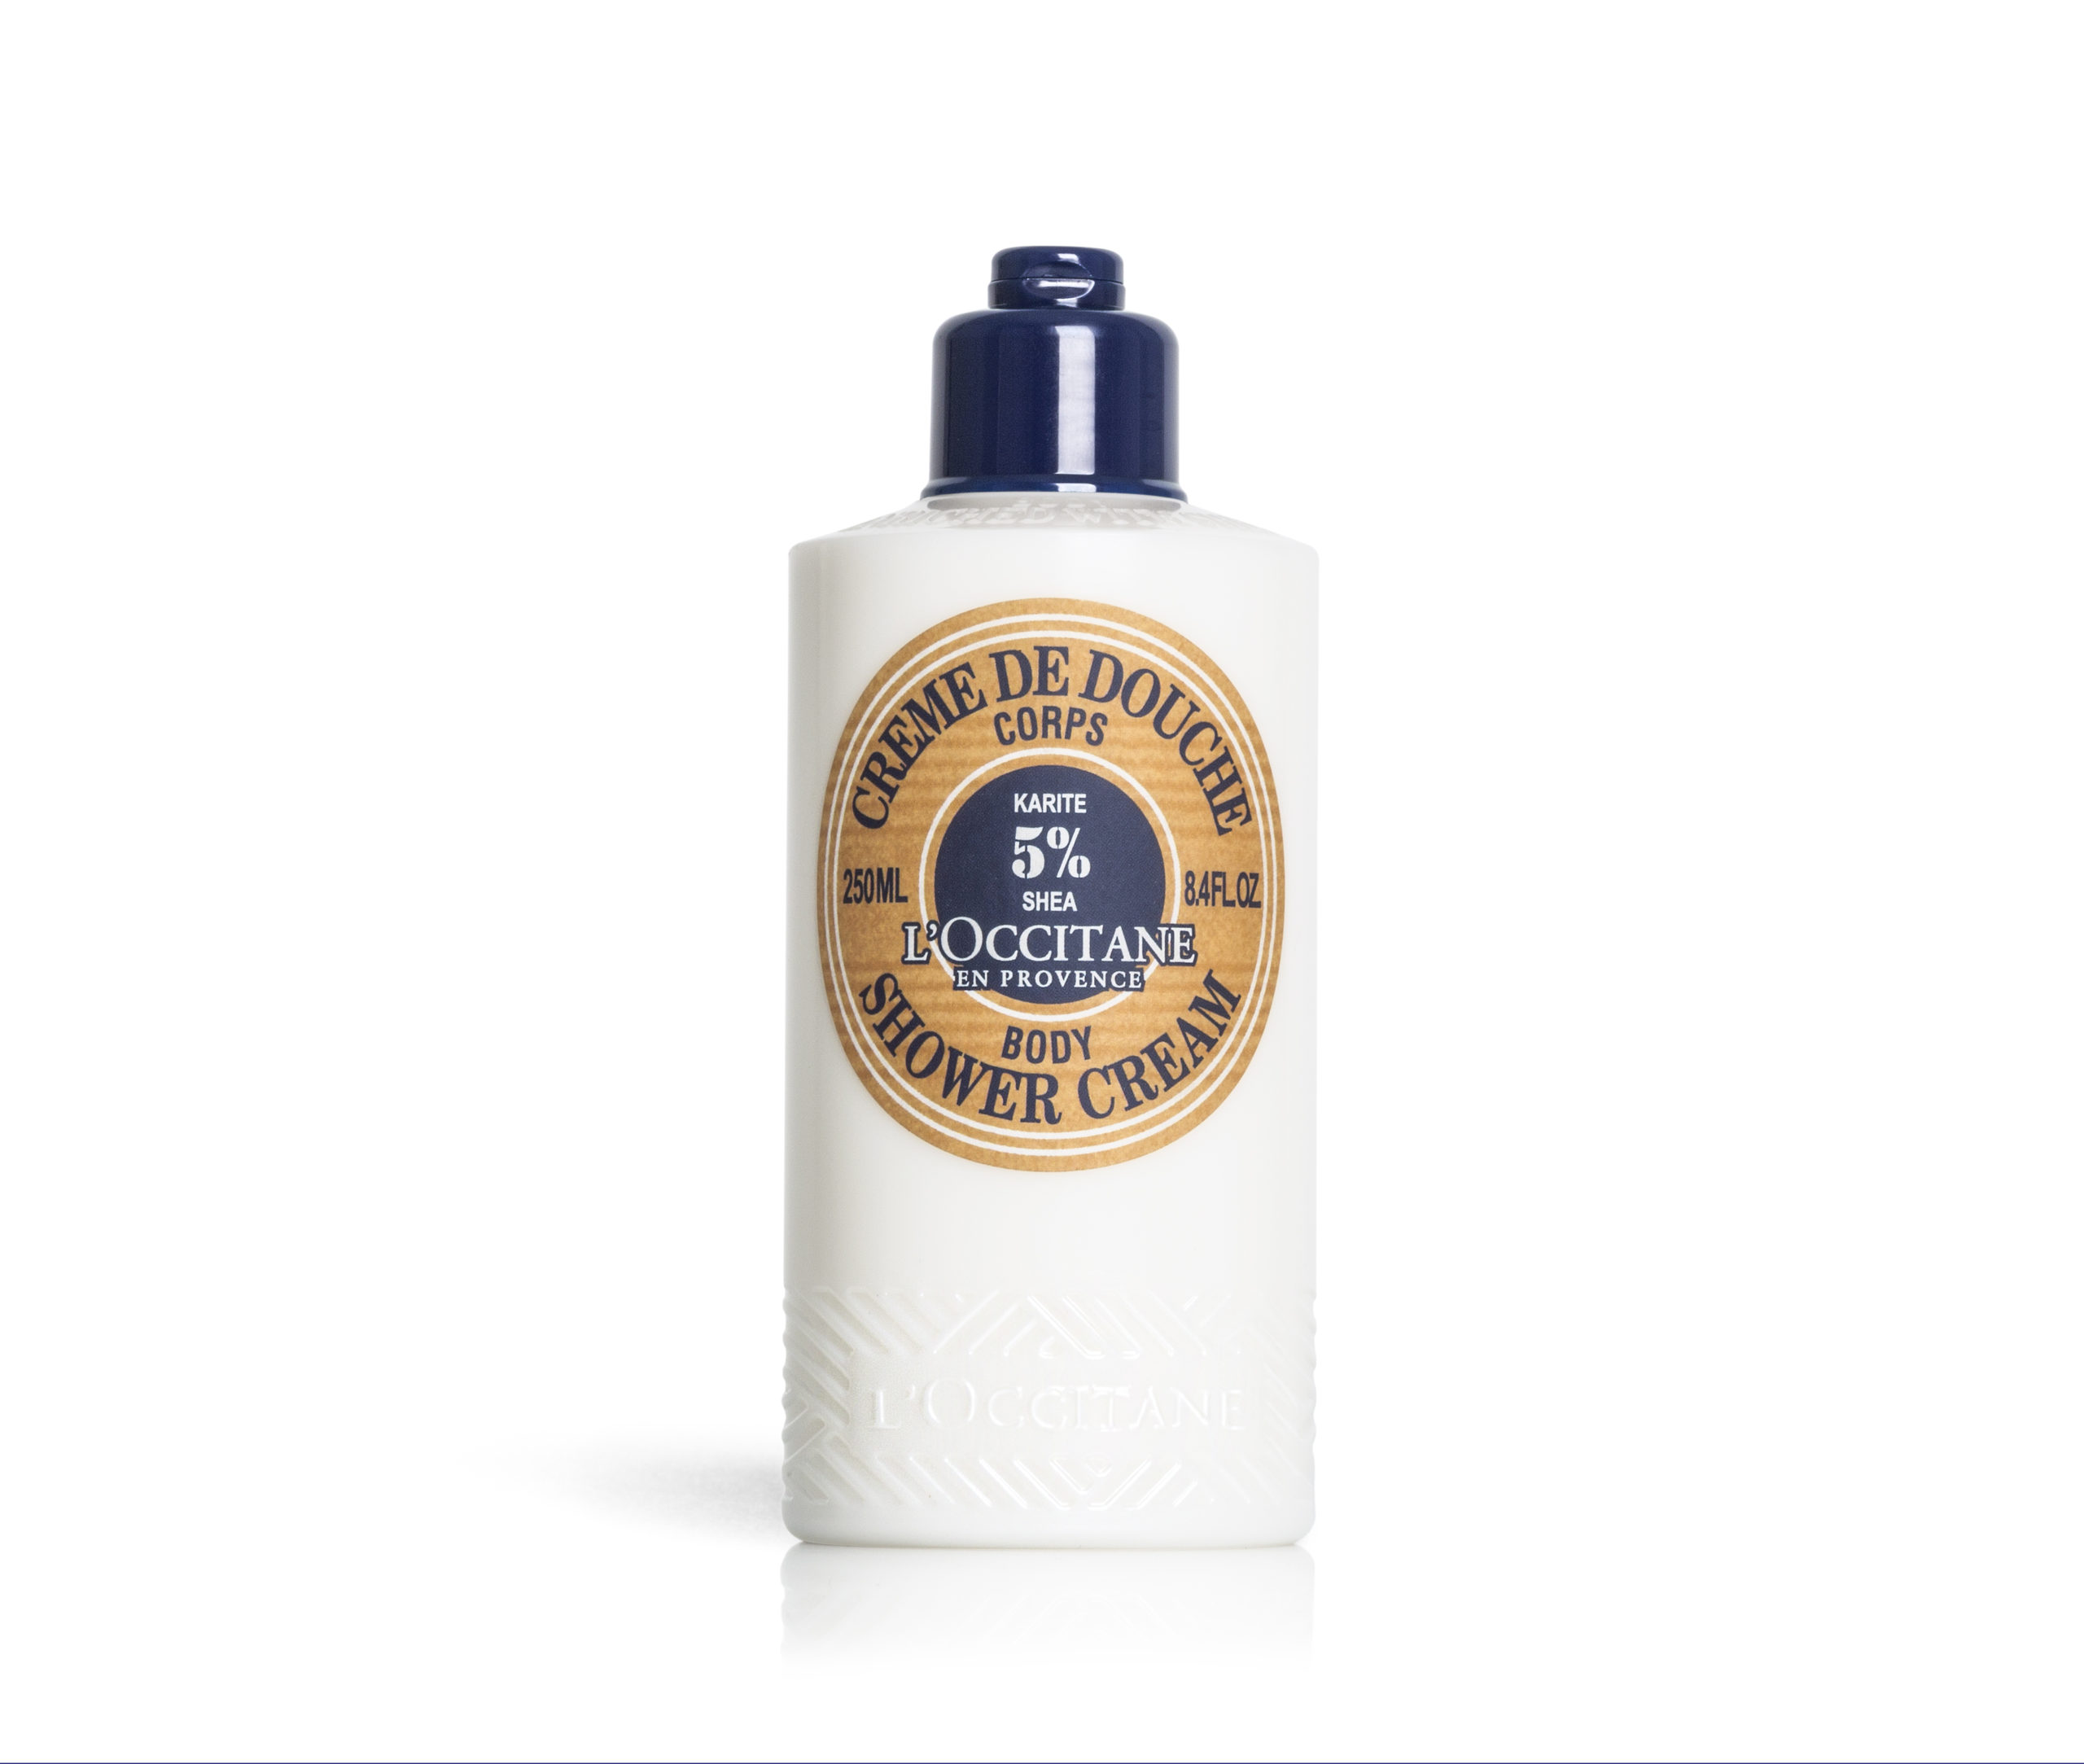 Loccitane Shea butter shower cream 250ml